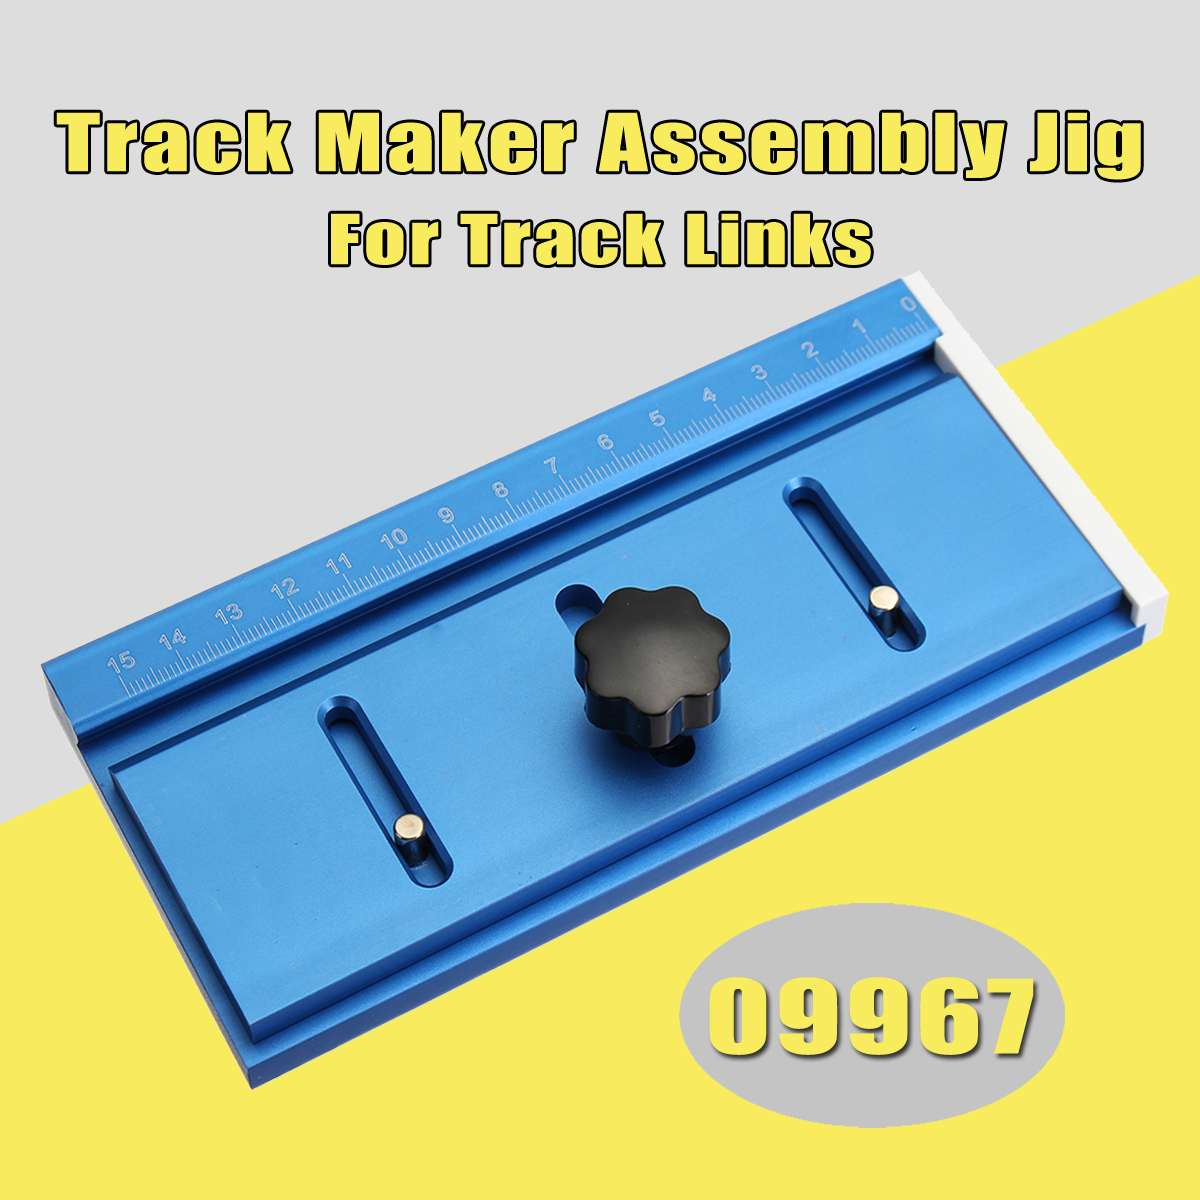 09967 Portable Track Maker Tracks Assembly Jig for Track Link Machinery Parts Master tools09967 Portable Track Maker Tracks Assembly Jig for Track Link Machinery Parts Master tools